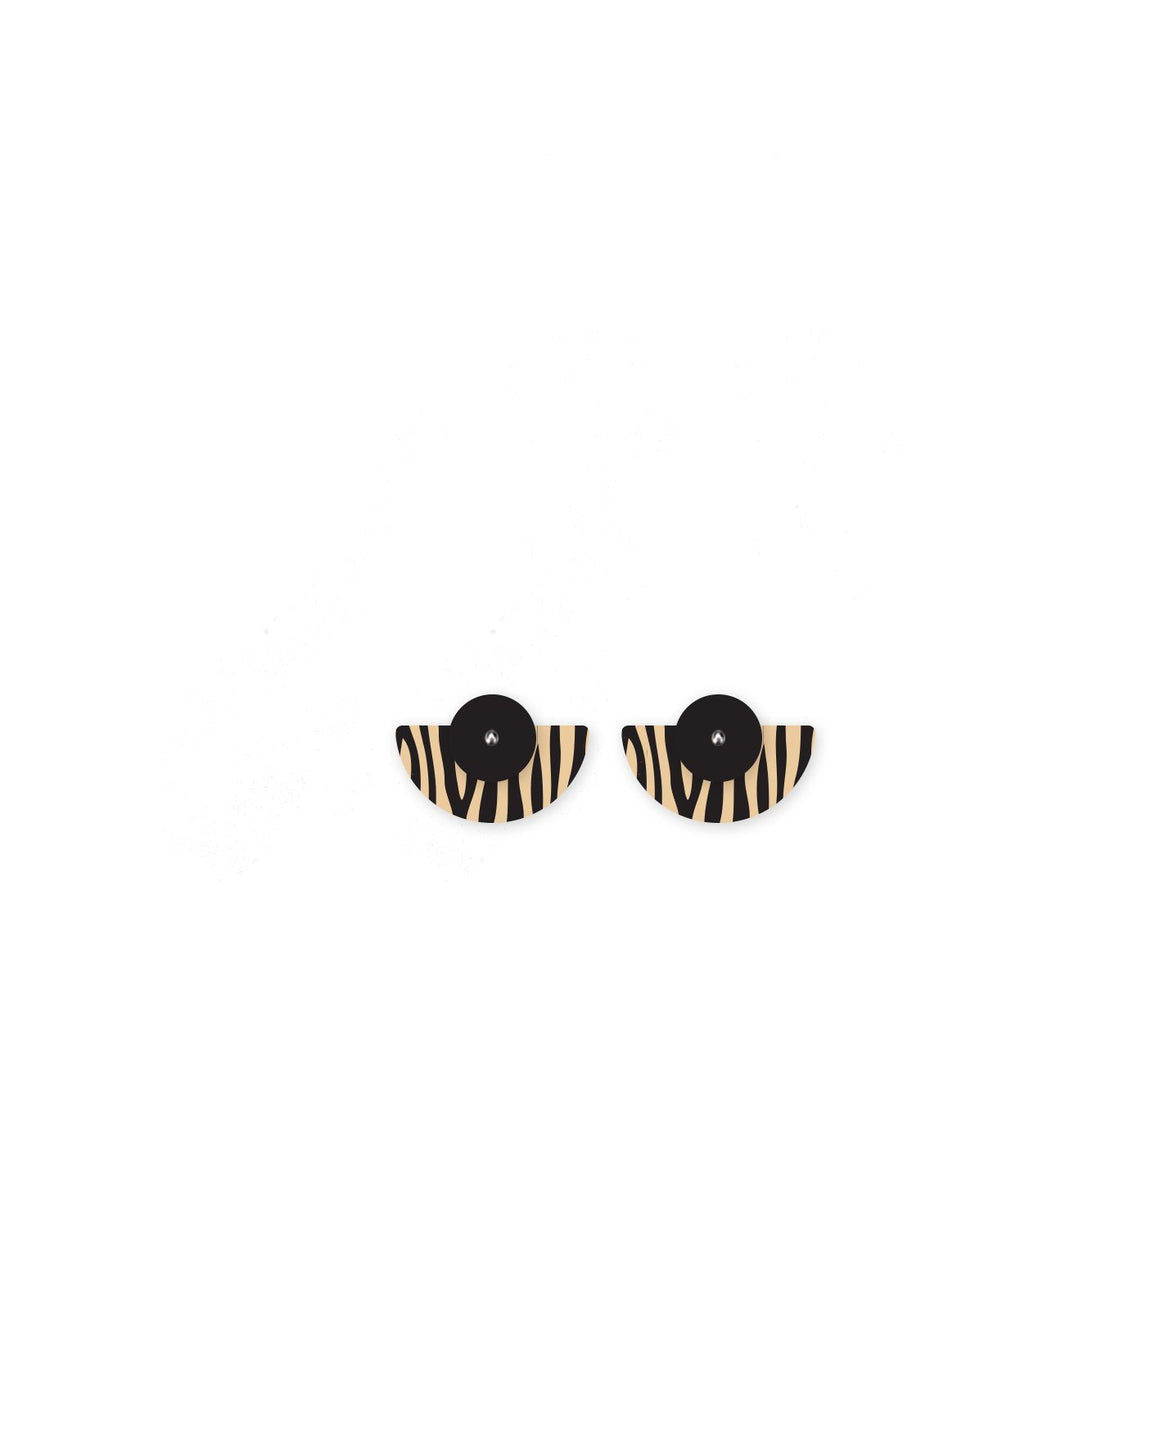 Reversible Creme Animal Print Layered Small Moon Stud Earrings